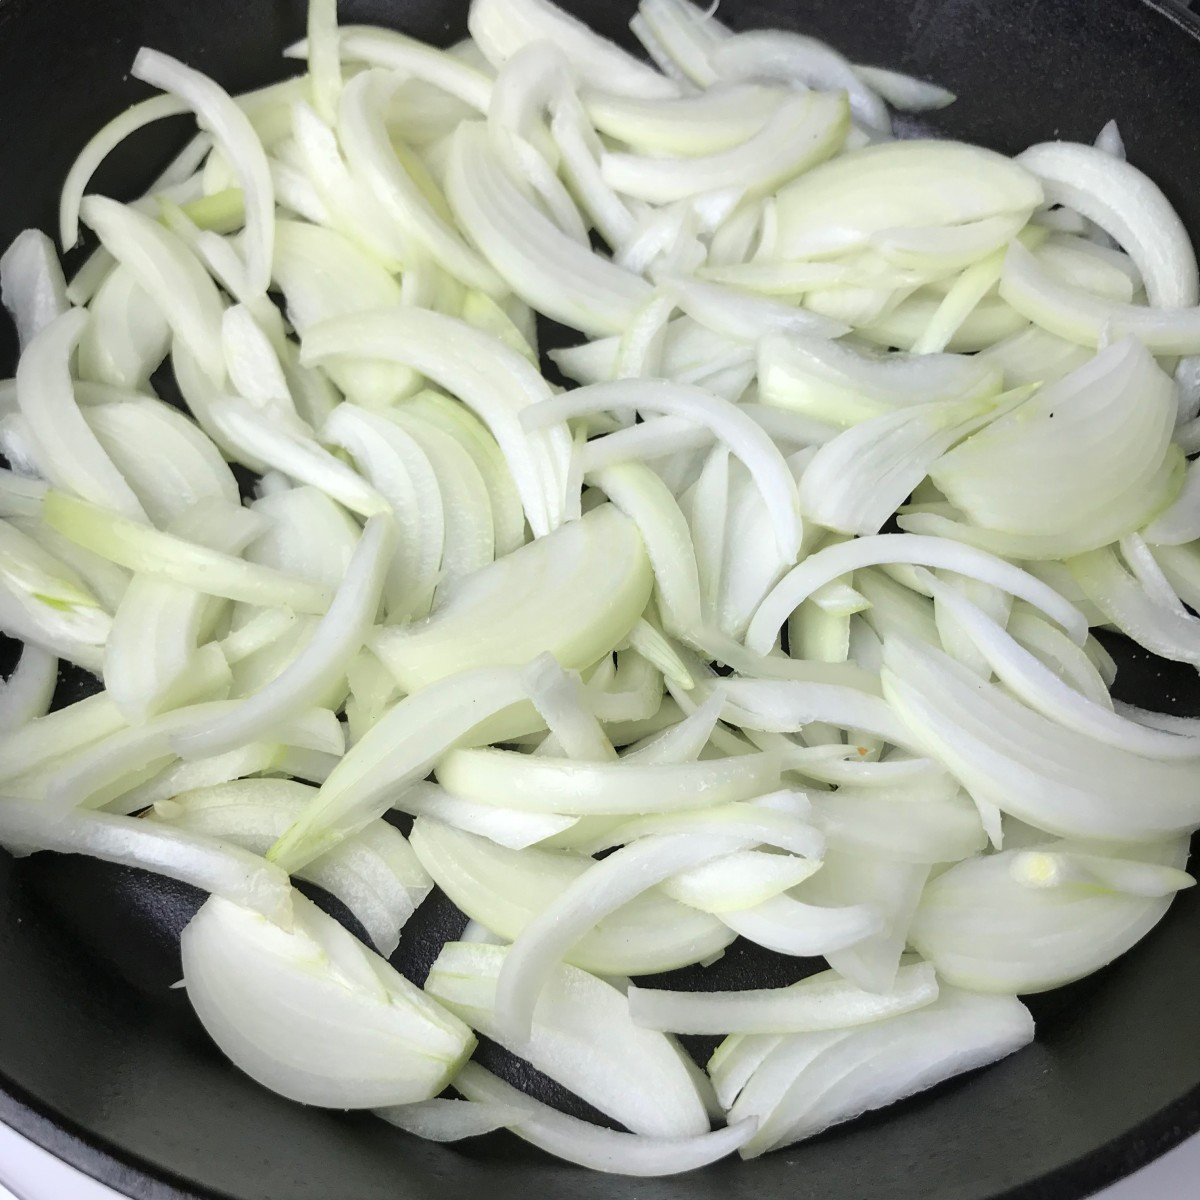 Please don't use a non-stick pan for this if at all possible. It's much better in this instance to use cast iron if you have it, or at least stainless steel. Heat the oil until it's very hot, add the onions, stir, and reduce to low heat.